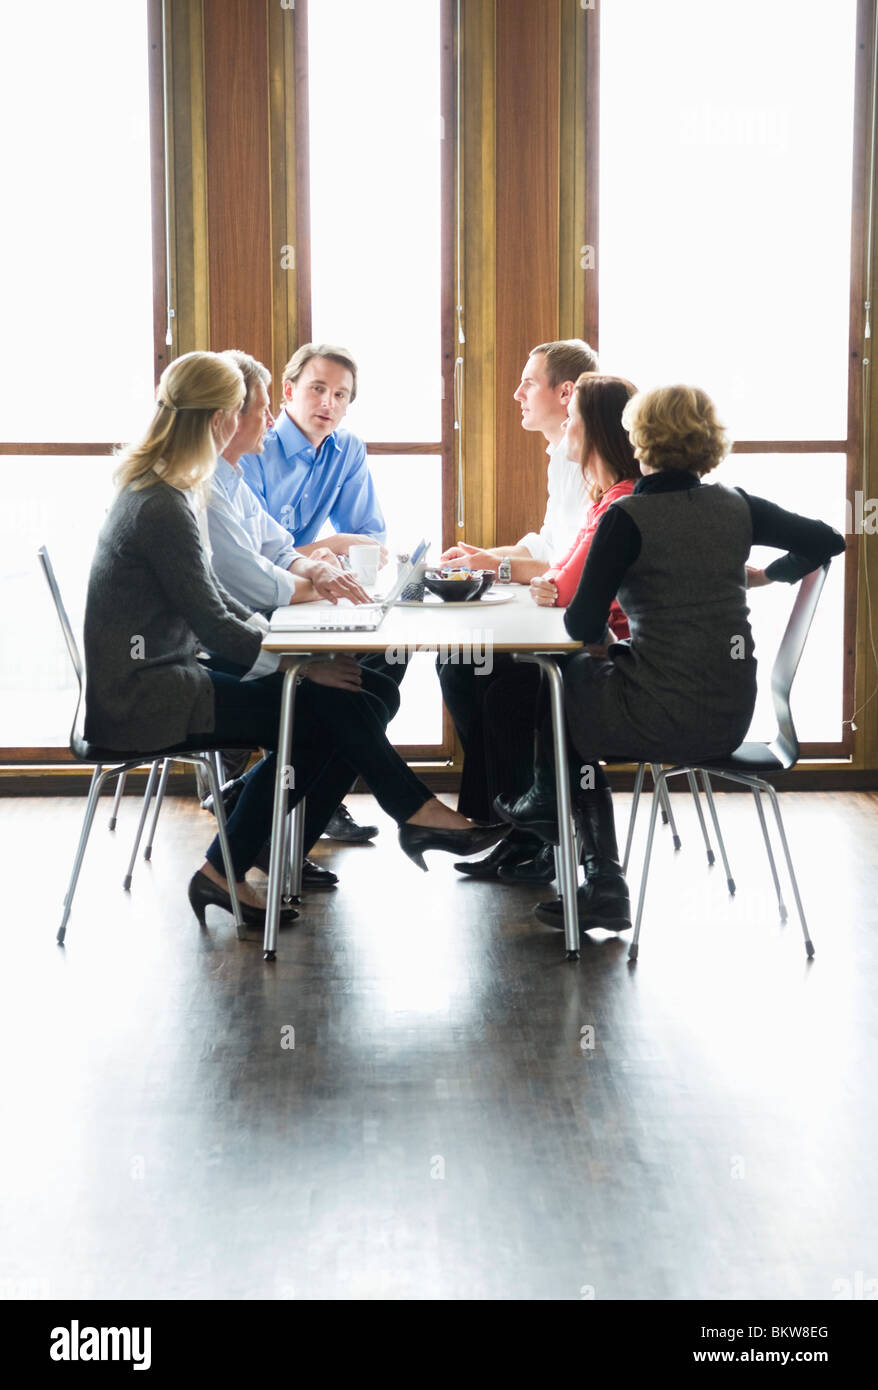 Six people sitting by table talking - Stock Image